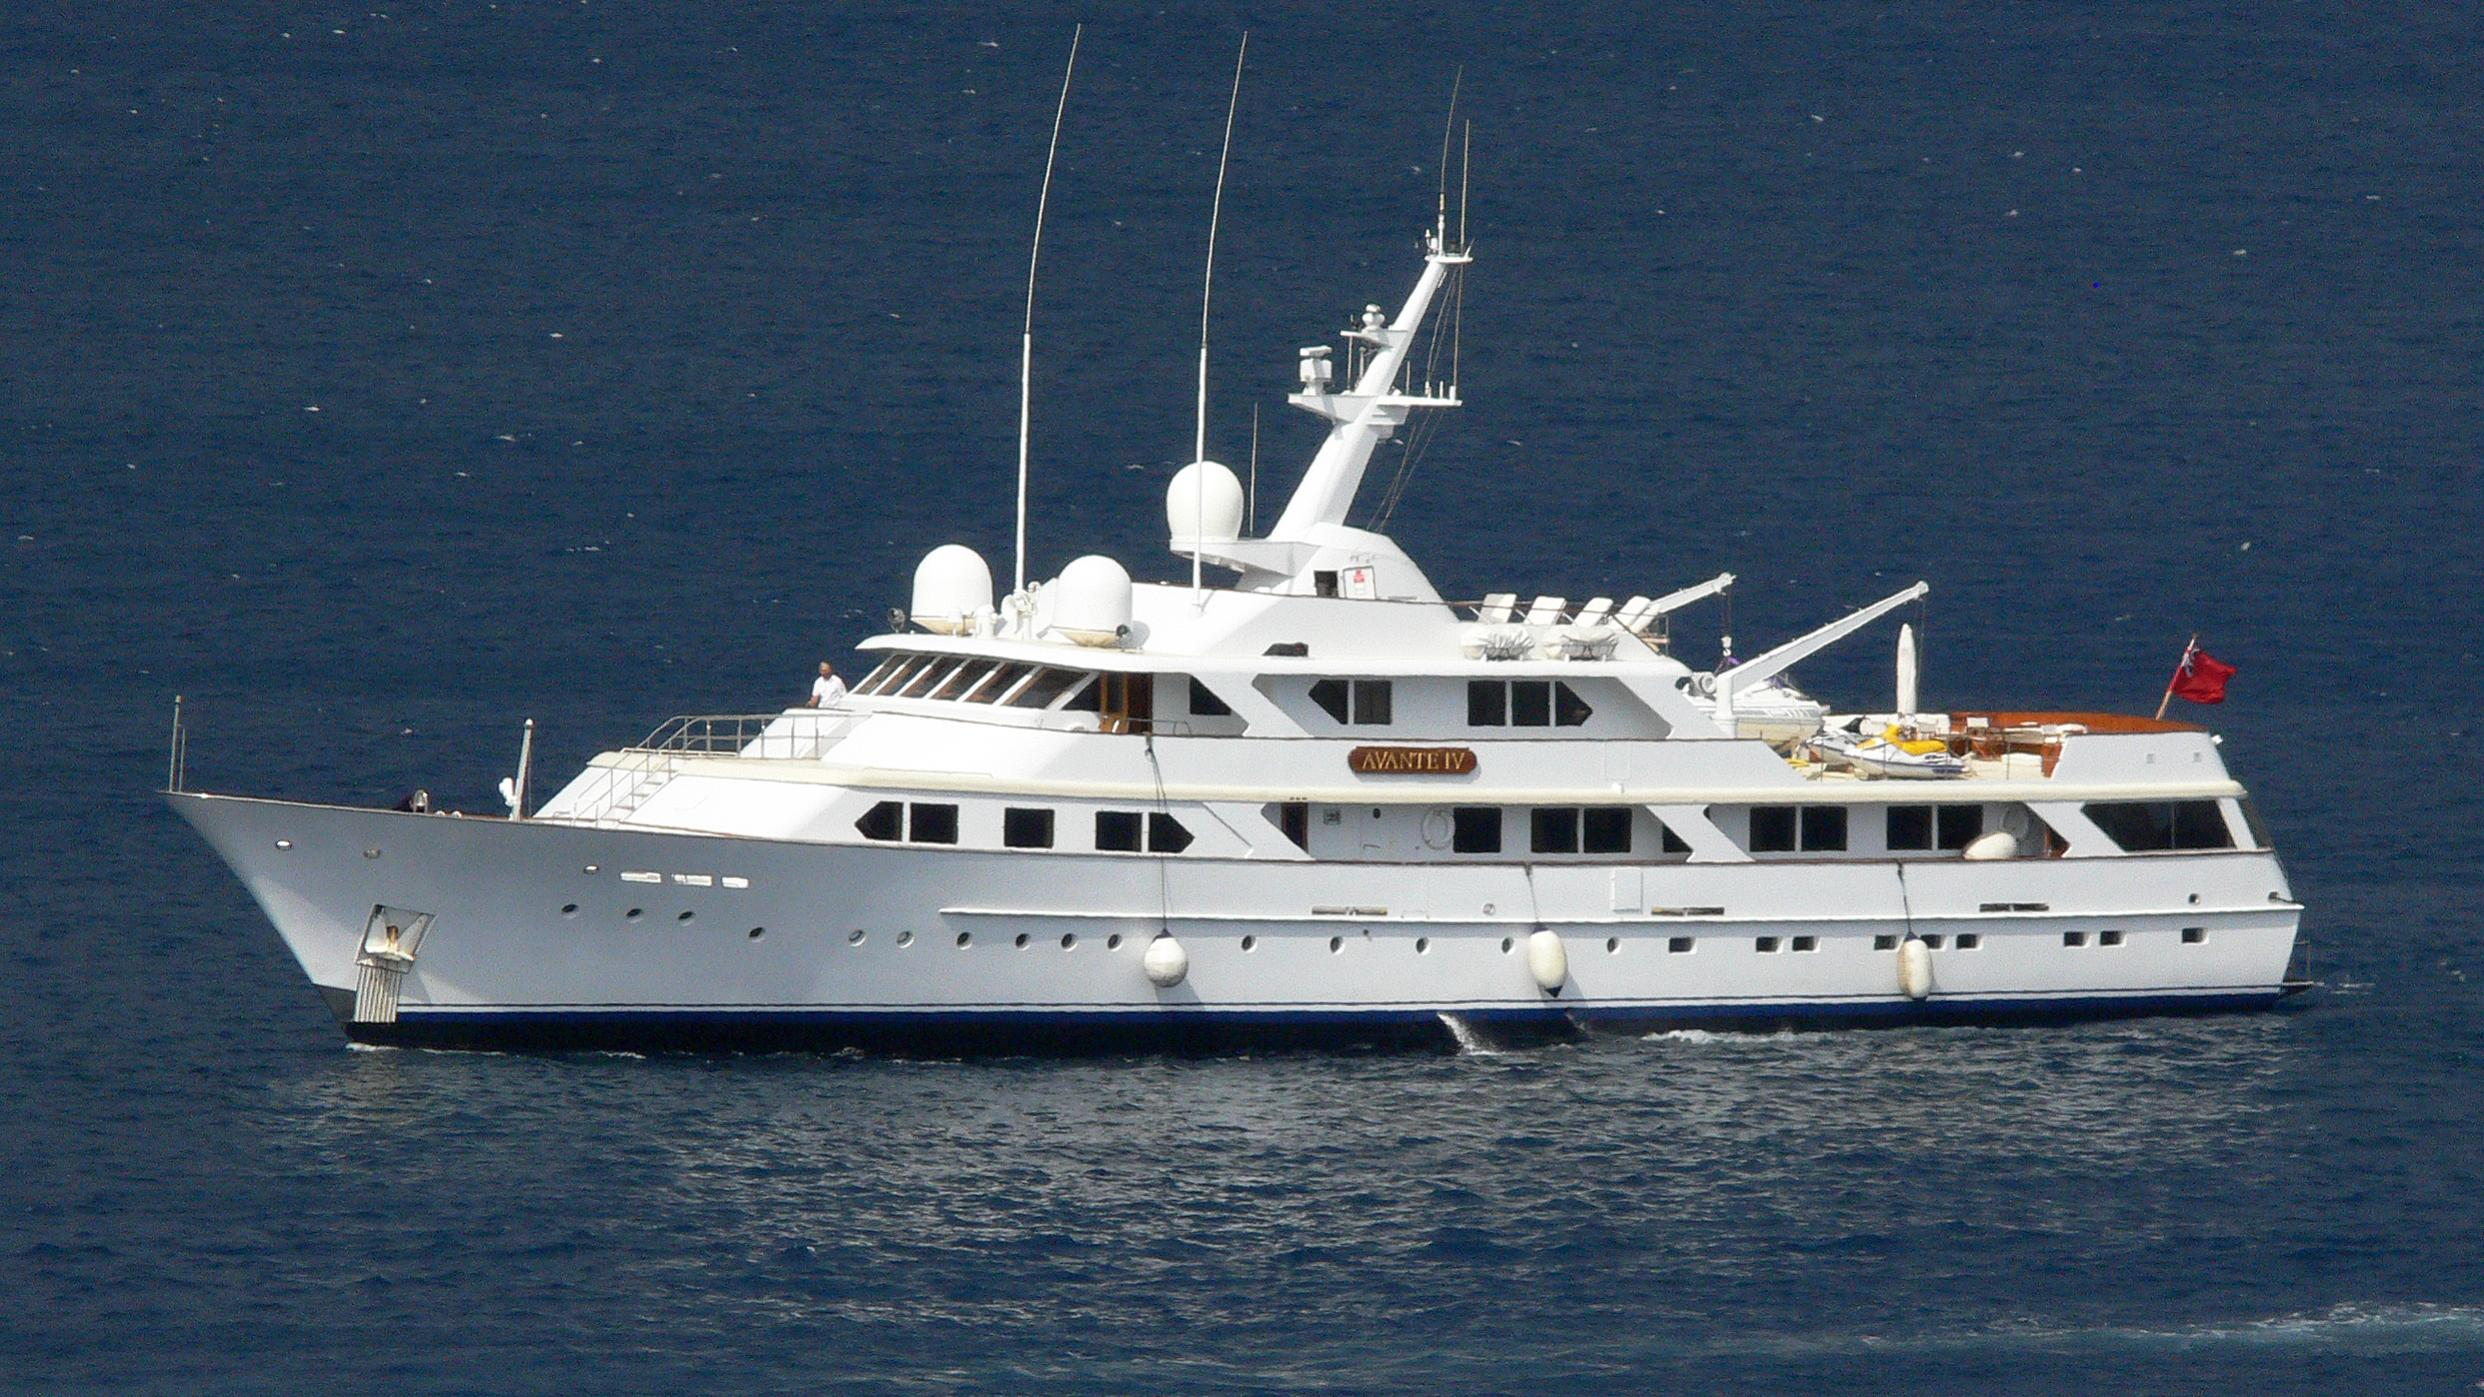 mirage-motor-yacht-feadship-1979-53m-profile-before-refit